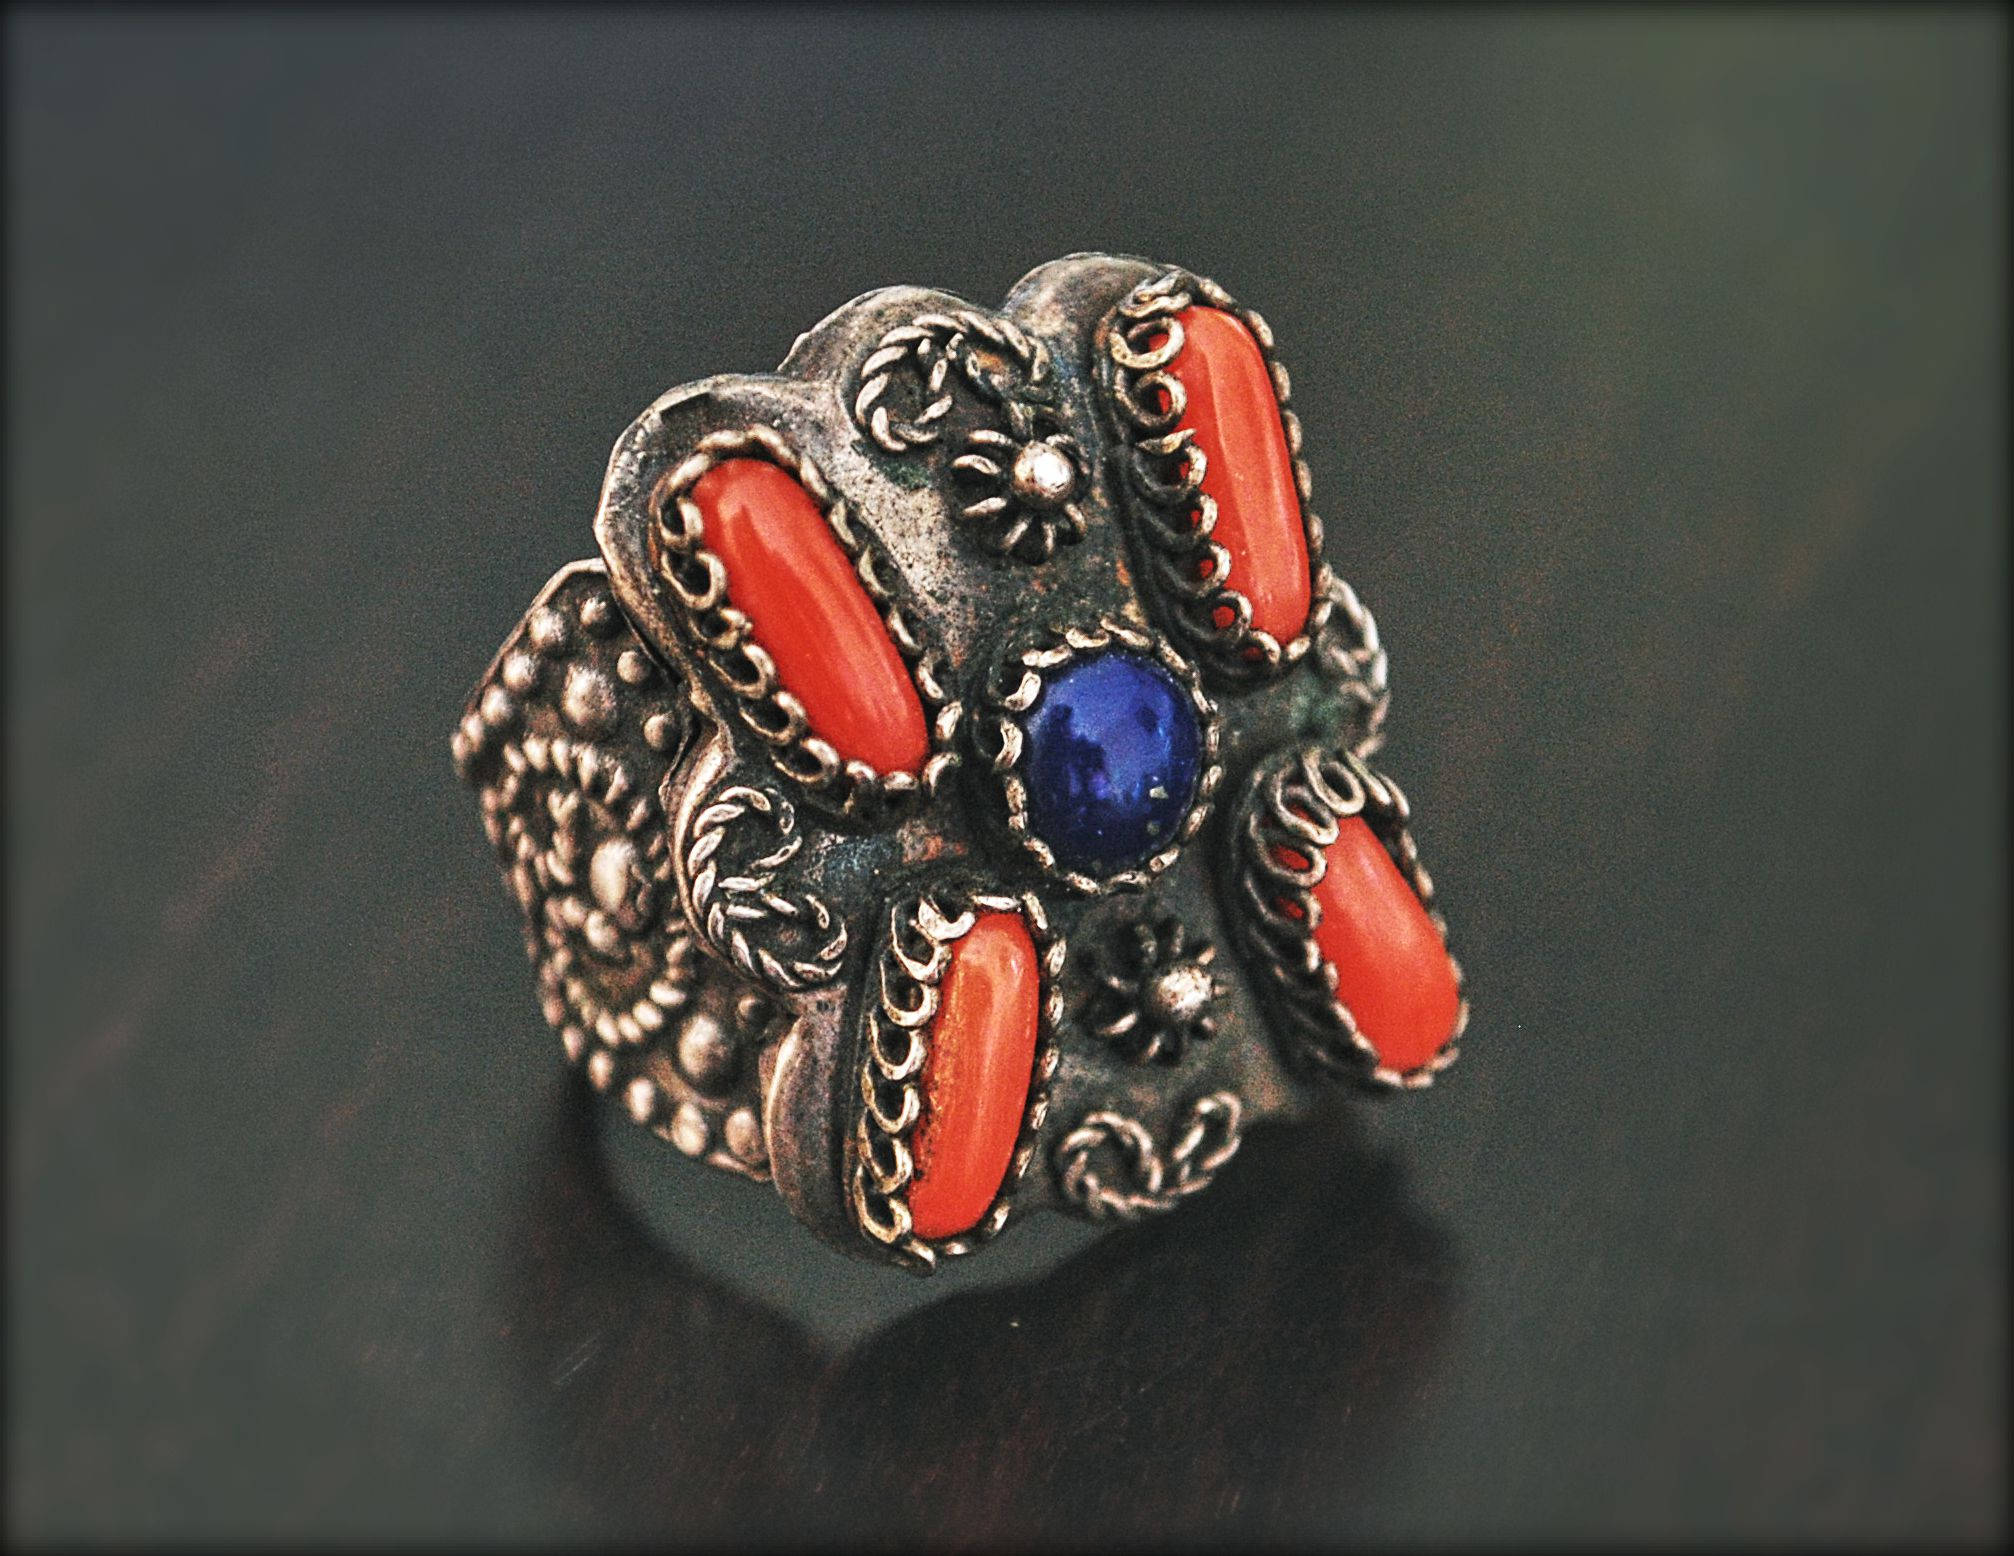 Antique Chinese Coral Lapis Ring - Size 6.5+ - Antique Chinese Ring - Ethnic Chinese Ring - Antique Coral Ring - Old Chinese Ring